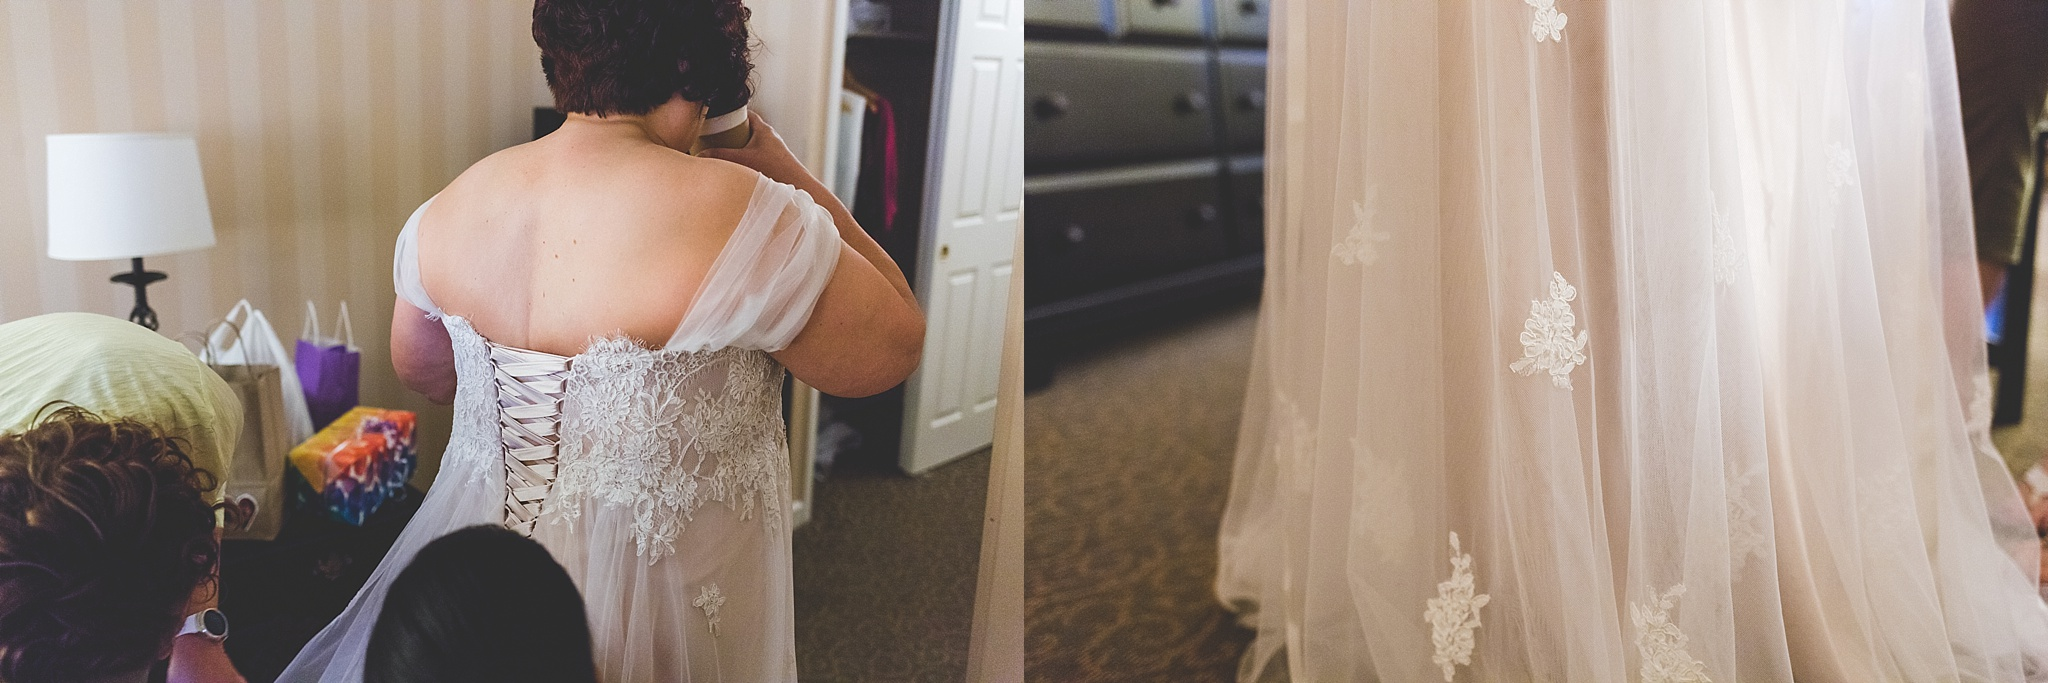 Albany_Wedding_Photographer_8765.jpg